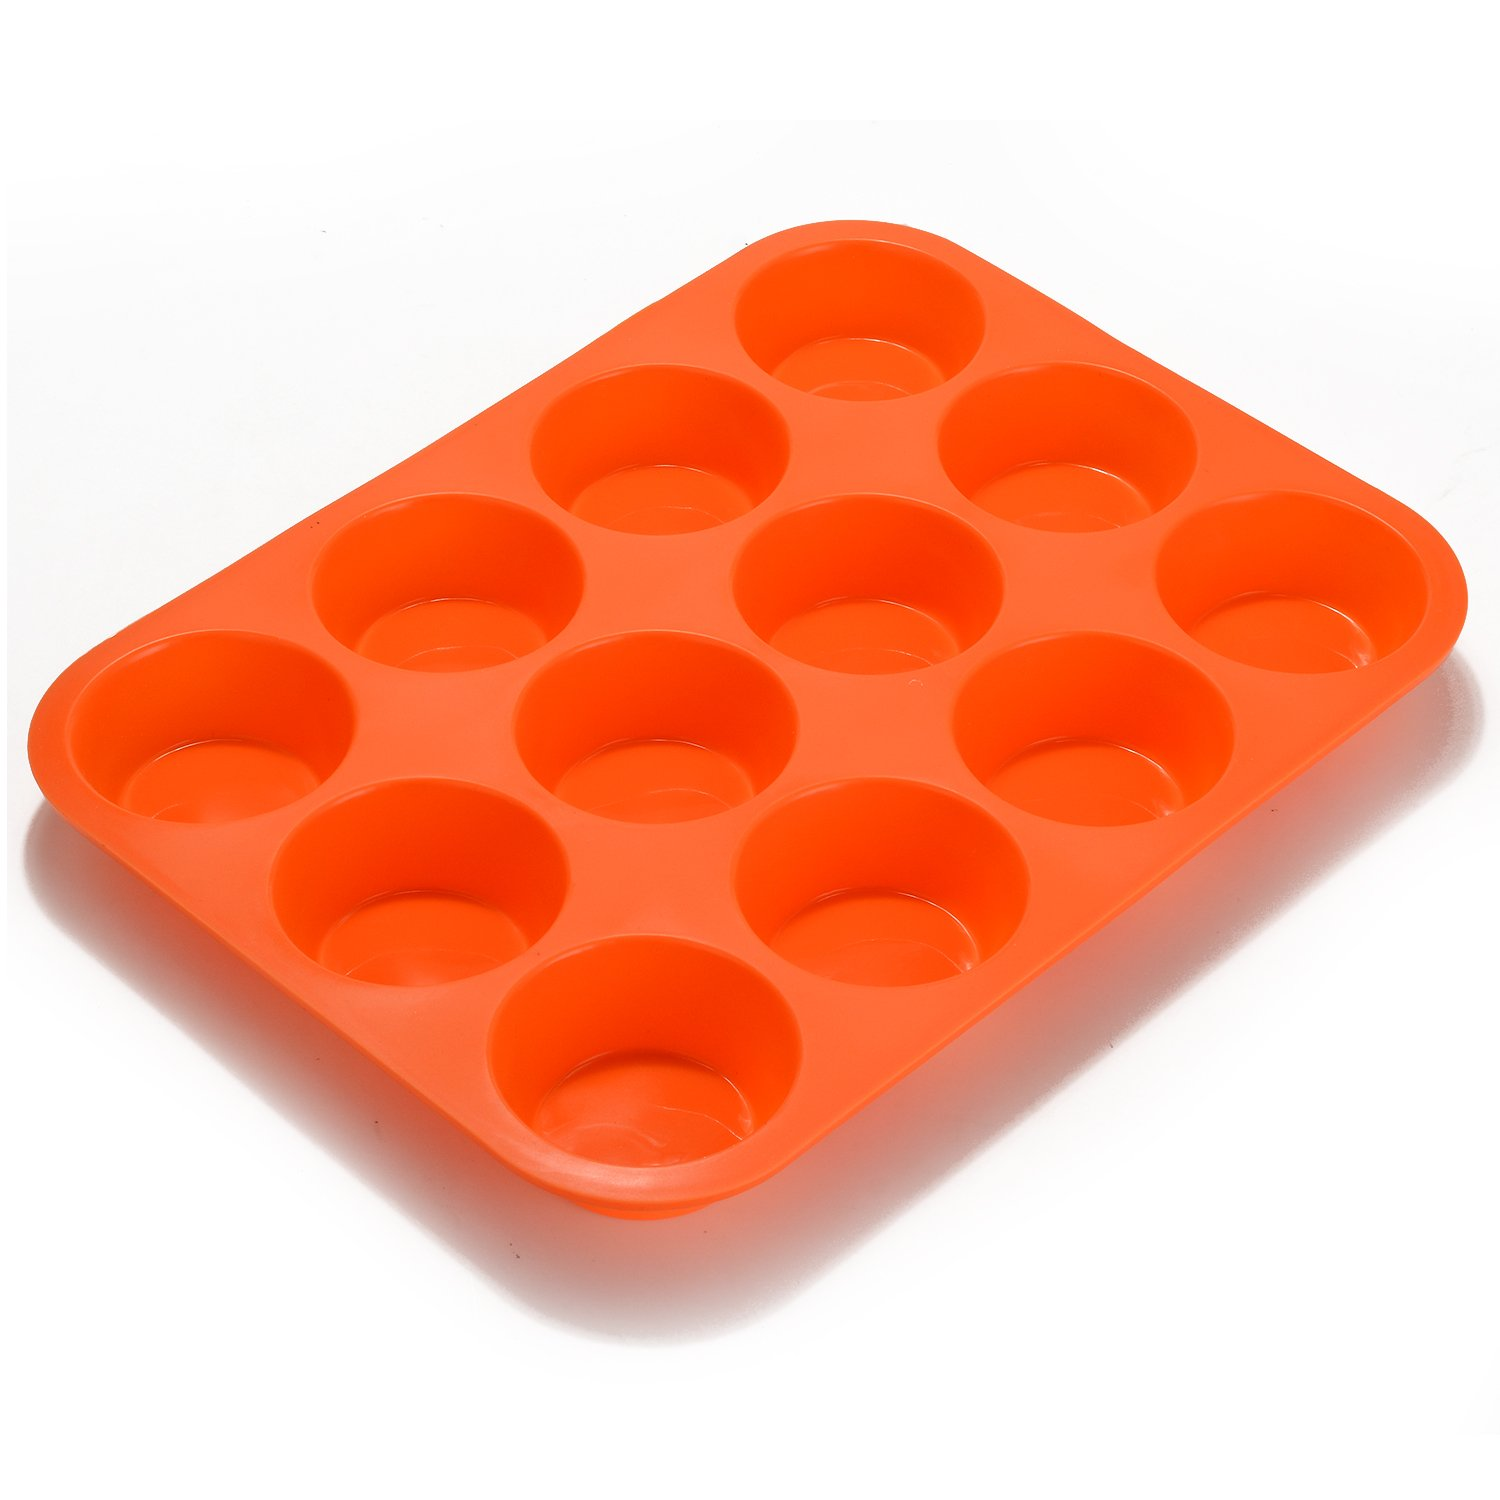 FITNATE Bakeware Silicone Muffin Pan 12 Cup, BPA-free, Non Stick by FITNATE (Image #1)